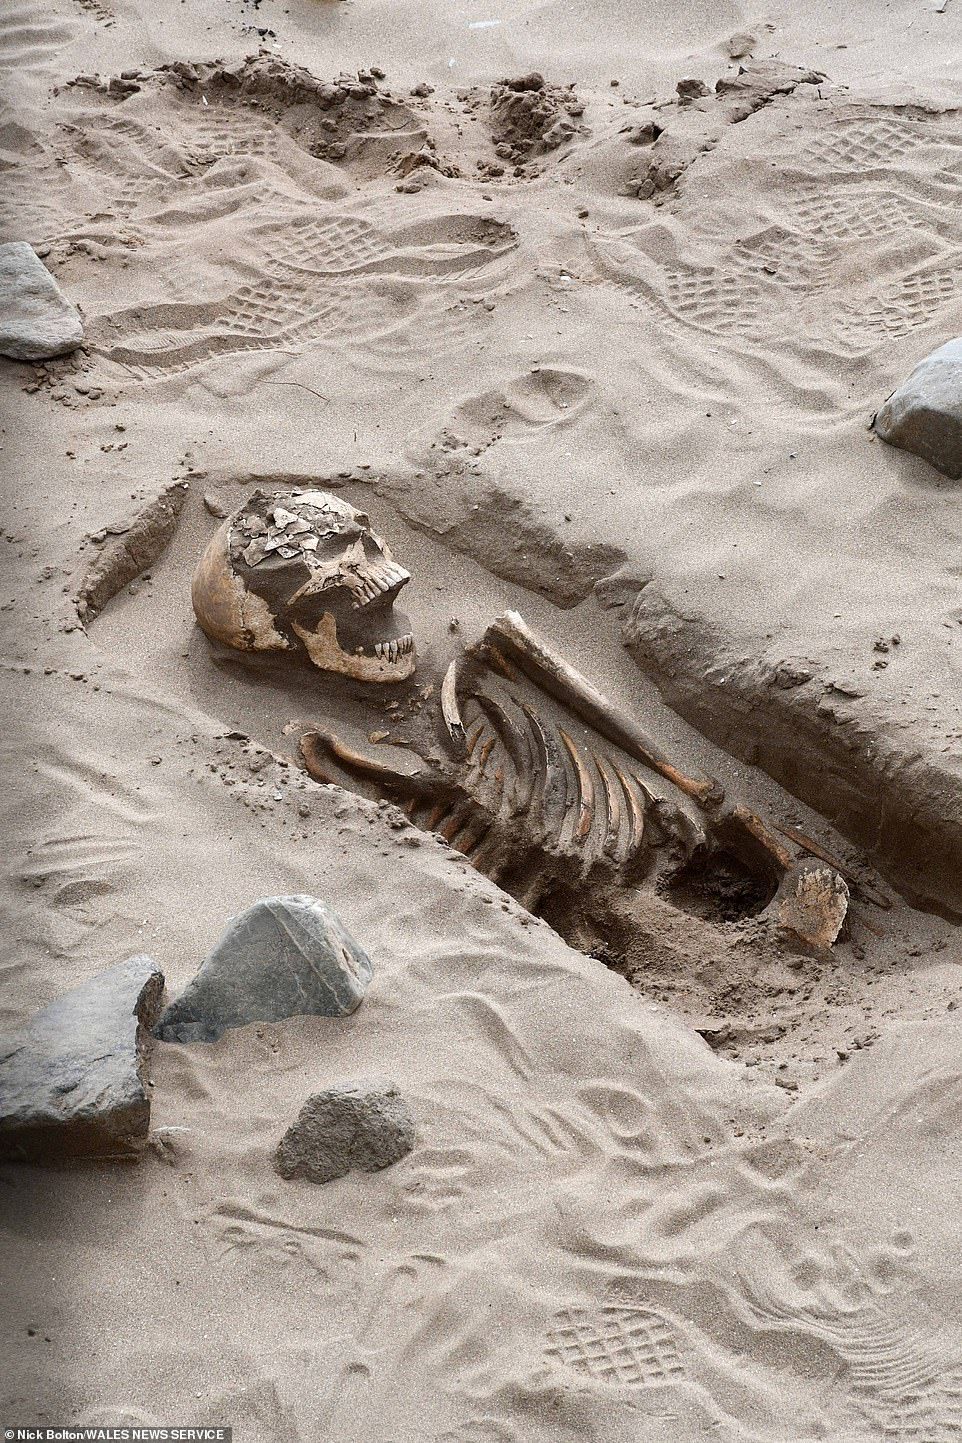 Preservation of the bones is 'absolutely incredible' because the skeletons have been immersed in sand, according toDyfed Archaeological Trust